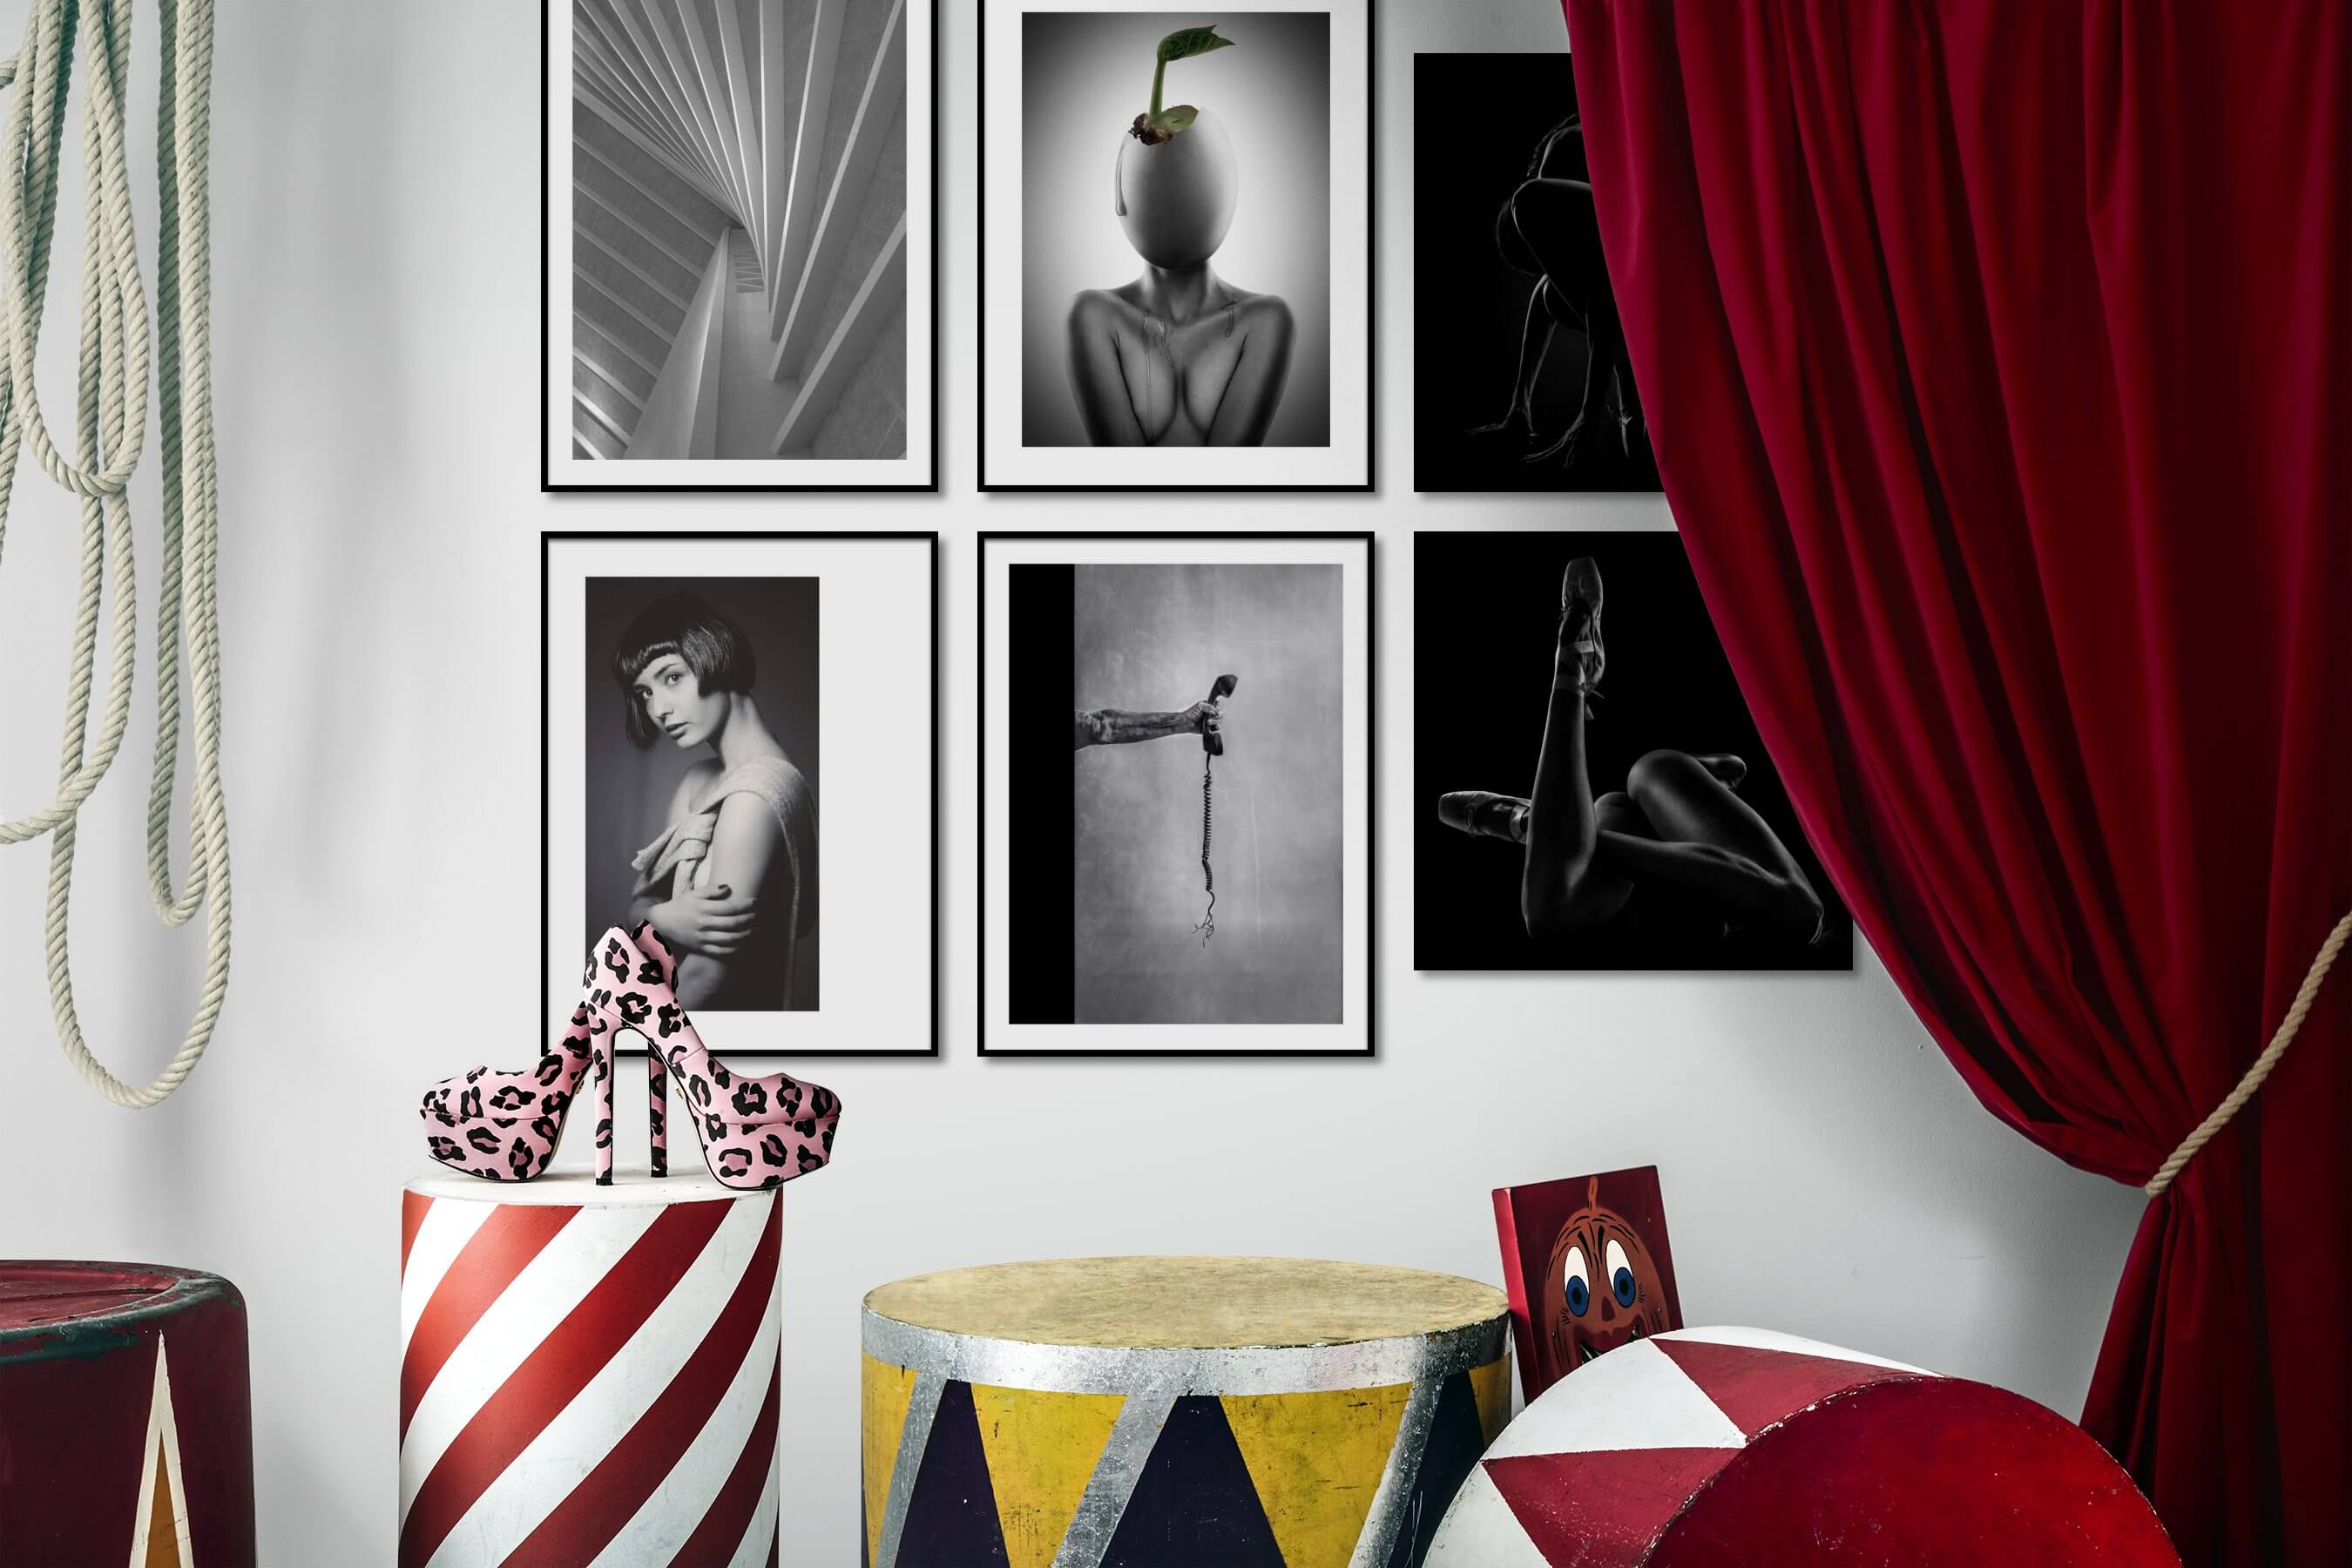 Gallery wall idea with six framed pictures arranged on a wall depicting Black & White, For the Moderate, Artsy, Fashion & Beauty, Vintage, Dark Tones, and For the Minimalist